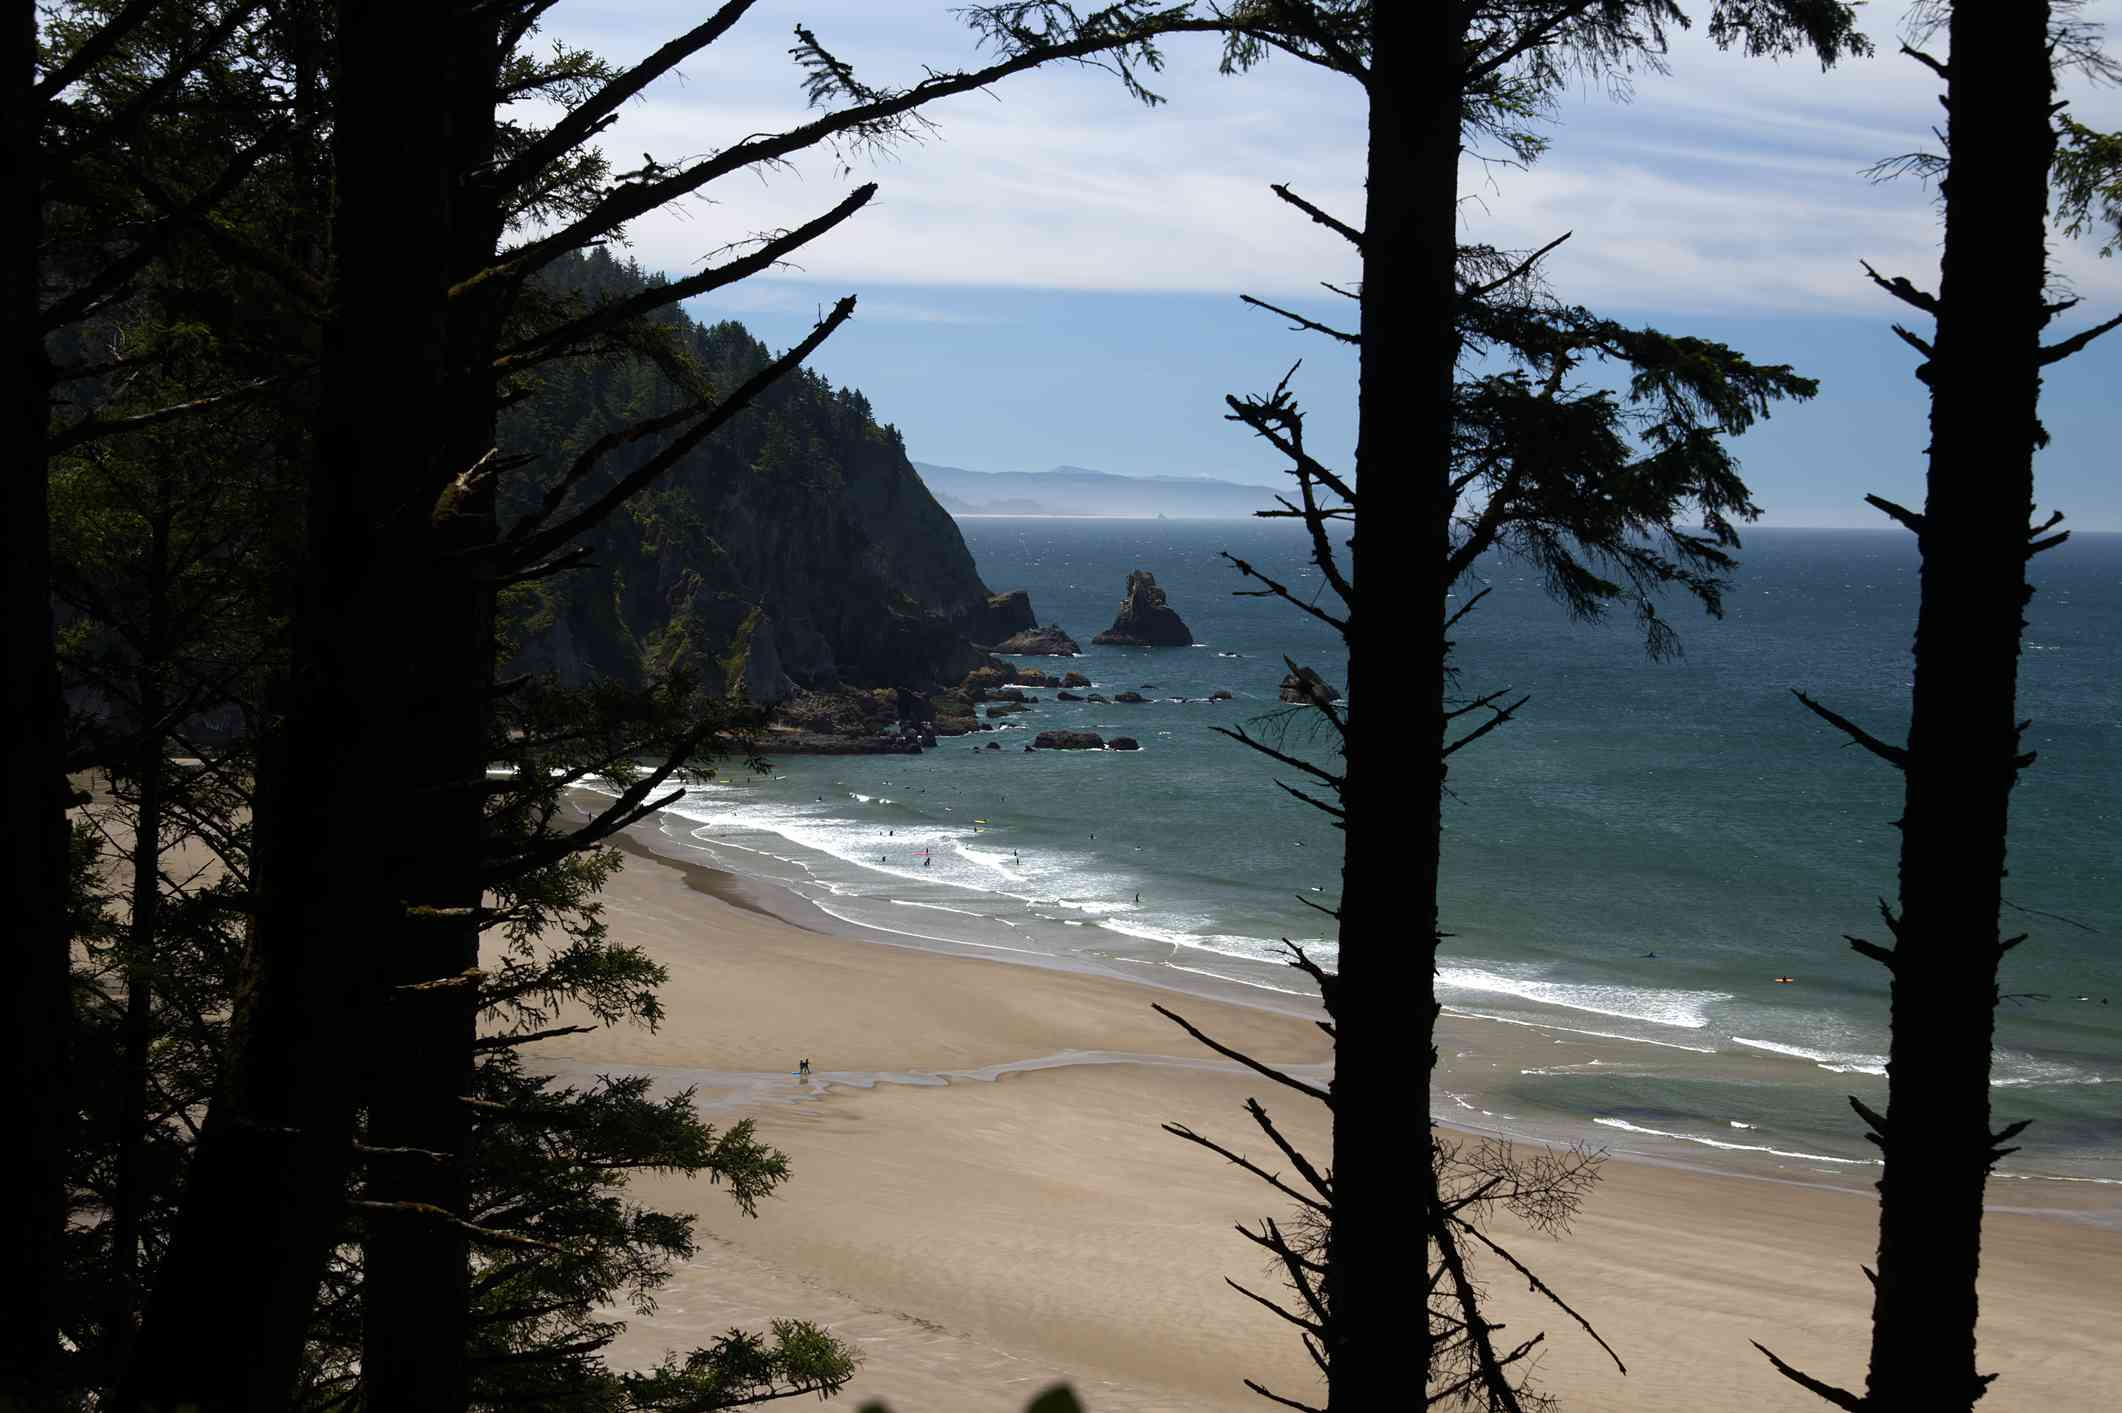 Short Sand Beach in Oswald West Oregon State Park as soon through the trees from above on a hillside